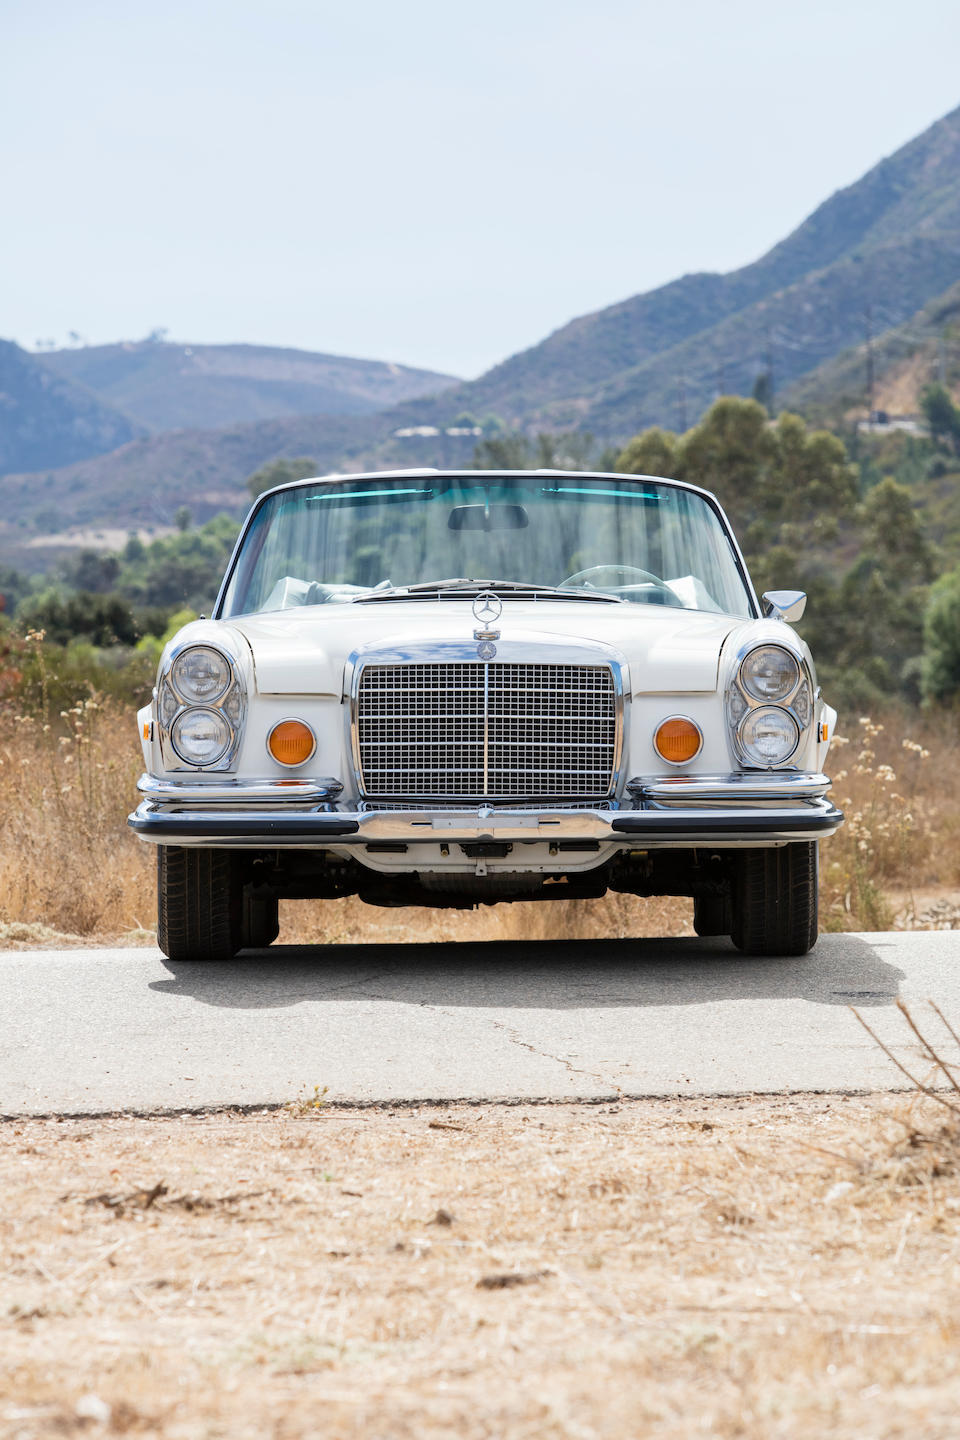 <b>1970 Mercedes-Benz  280SE 3.5 Cabriolet</b><br />Chassis no. 111027.12.000998<br />Engine no. 116980.12.000789